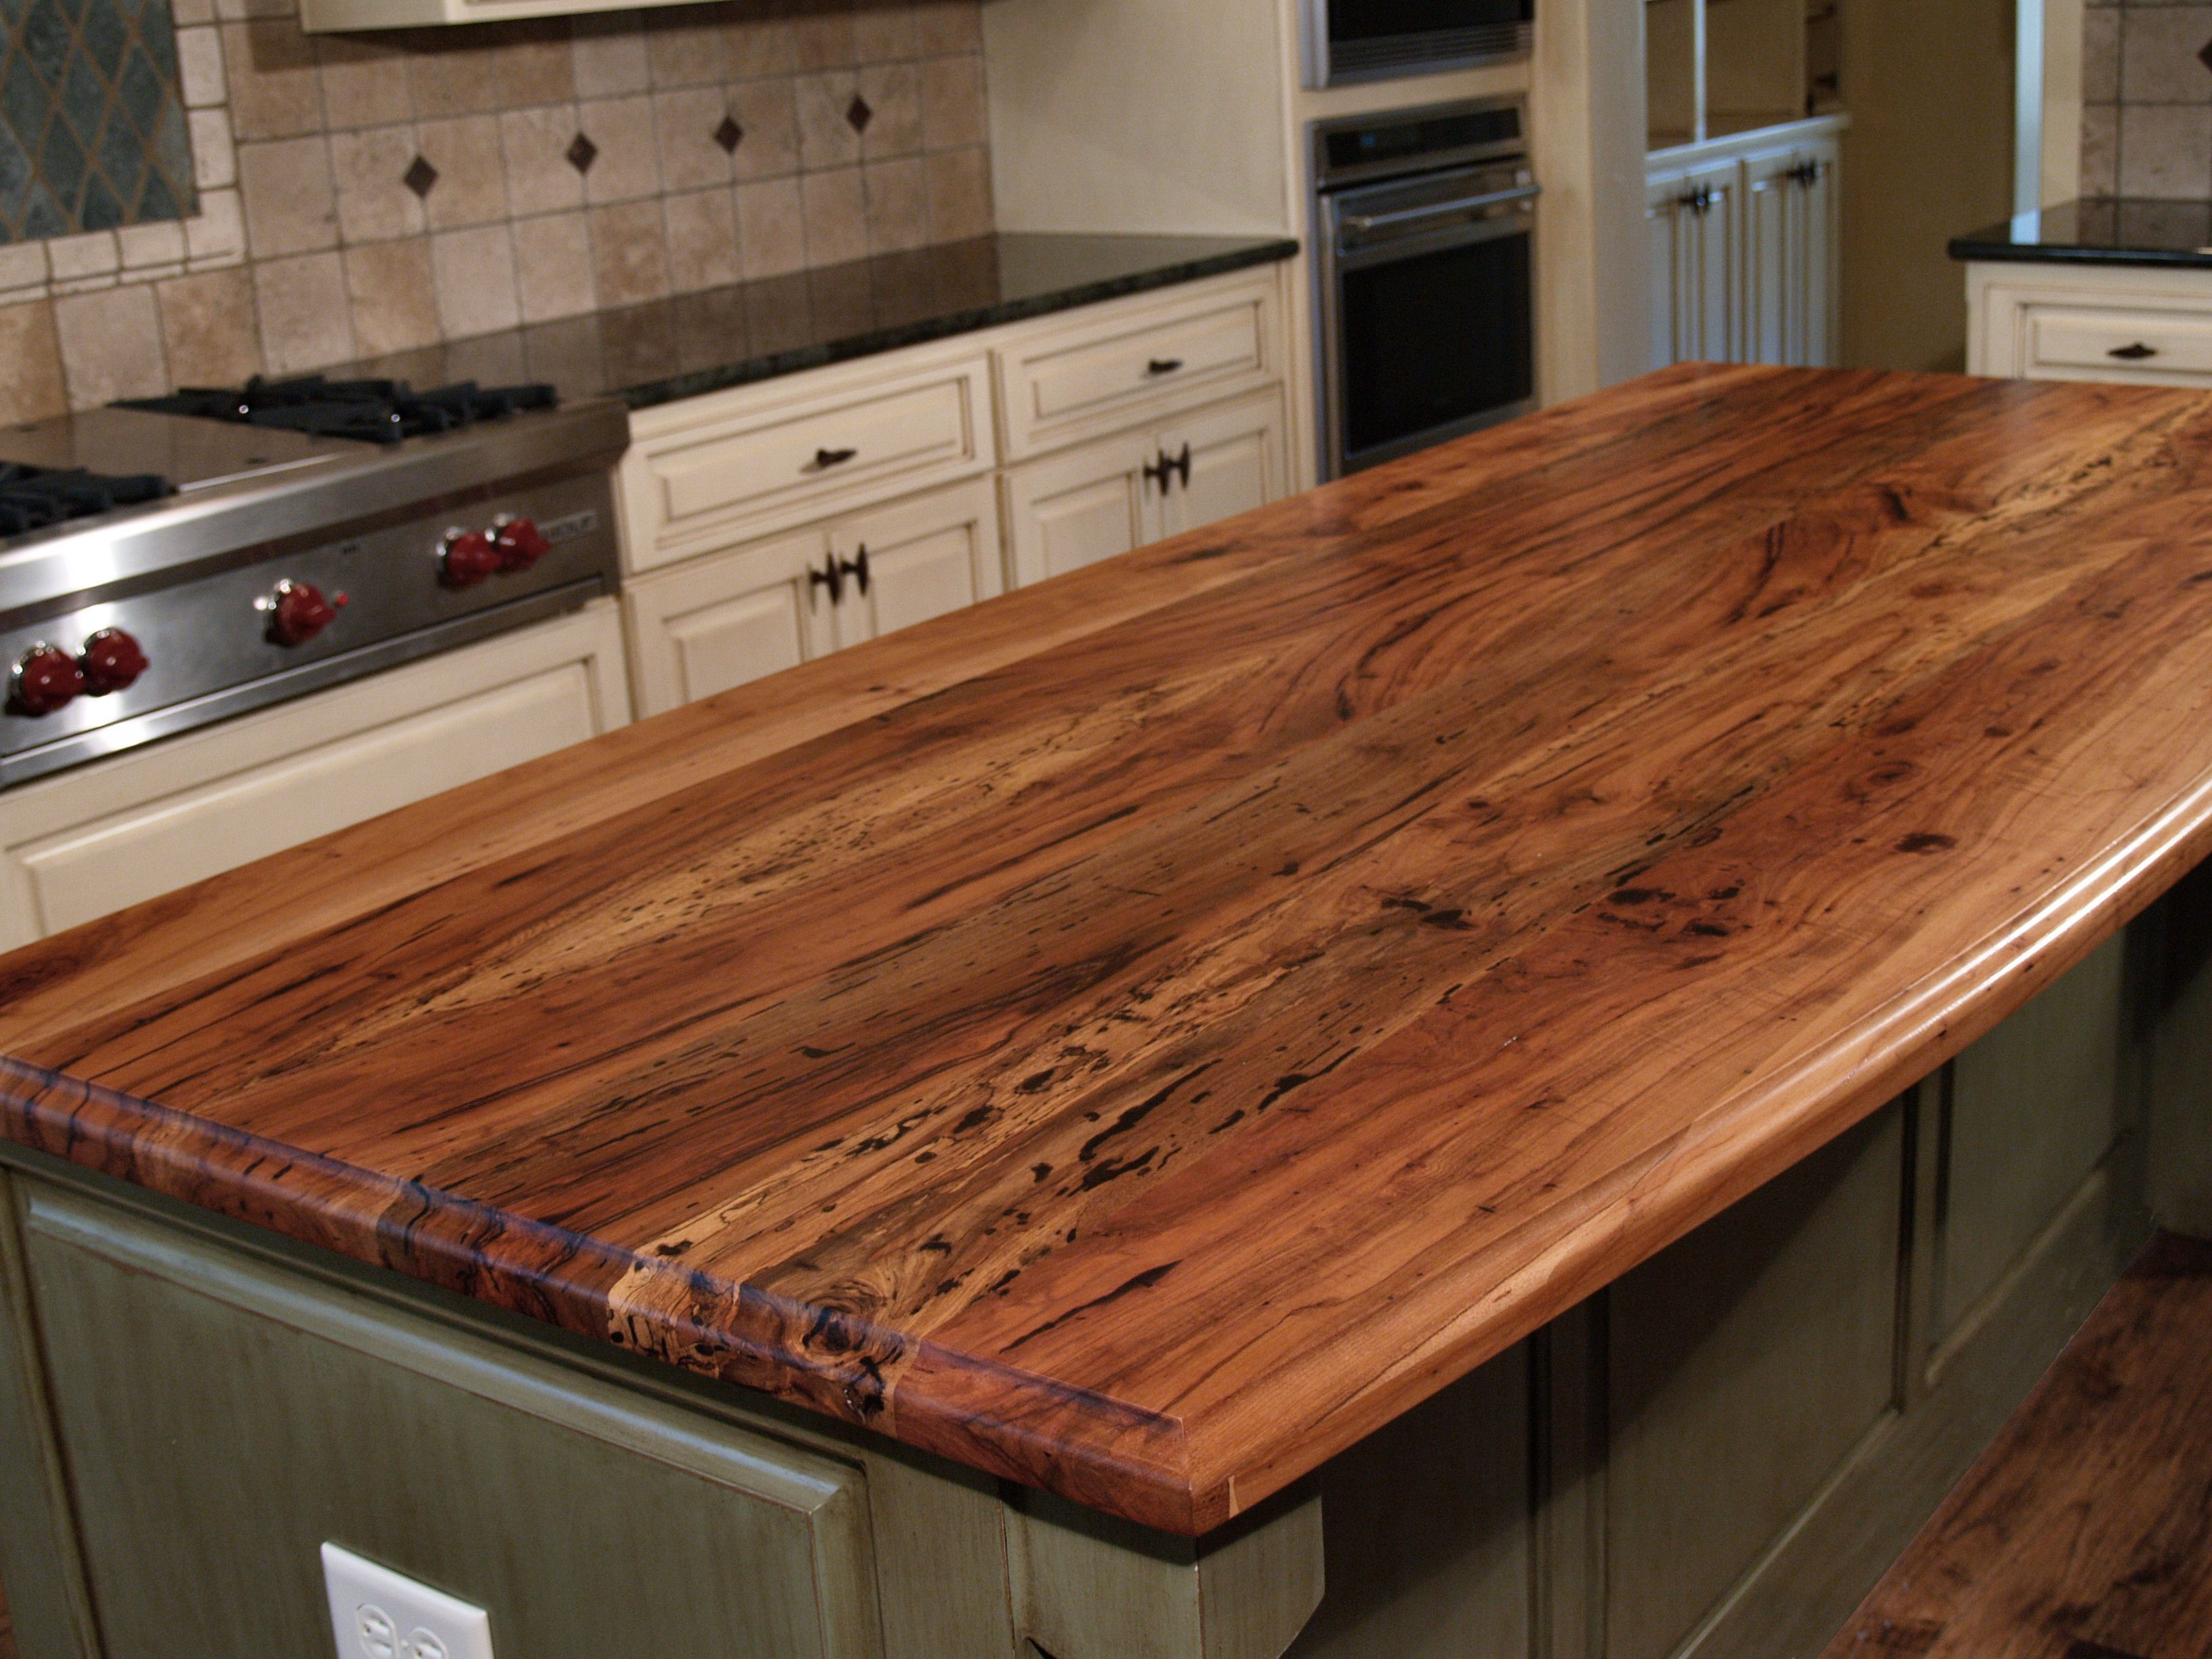 Best Place To Buy Butcher Block Countertops Wood Countertop | Wood Countertops • Wood Island Tops